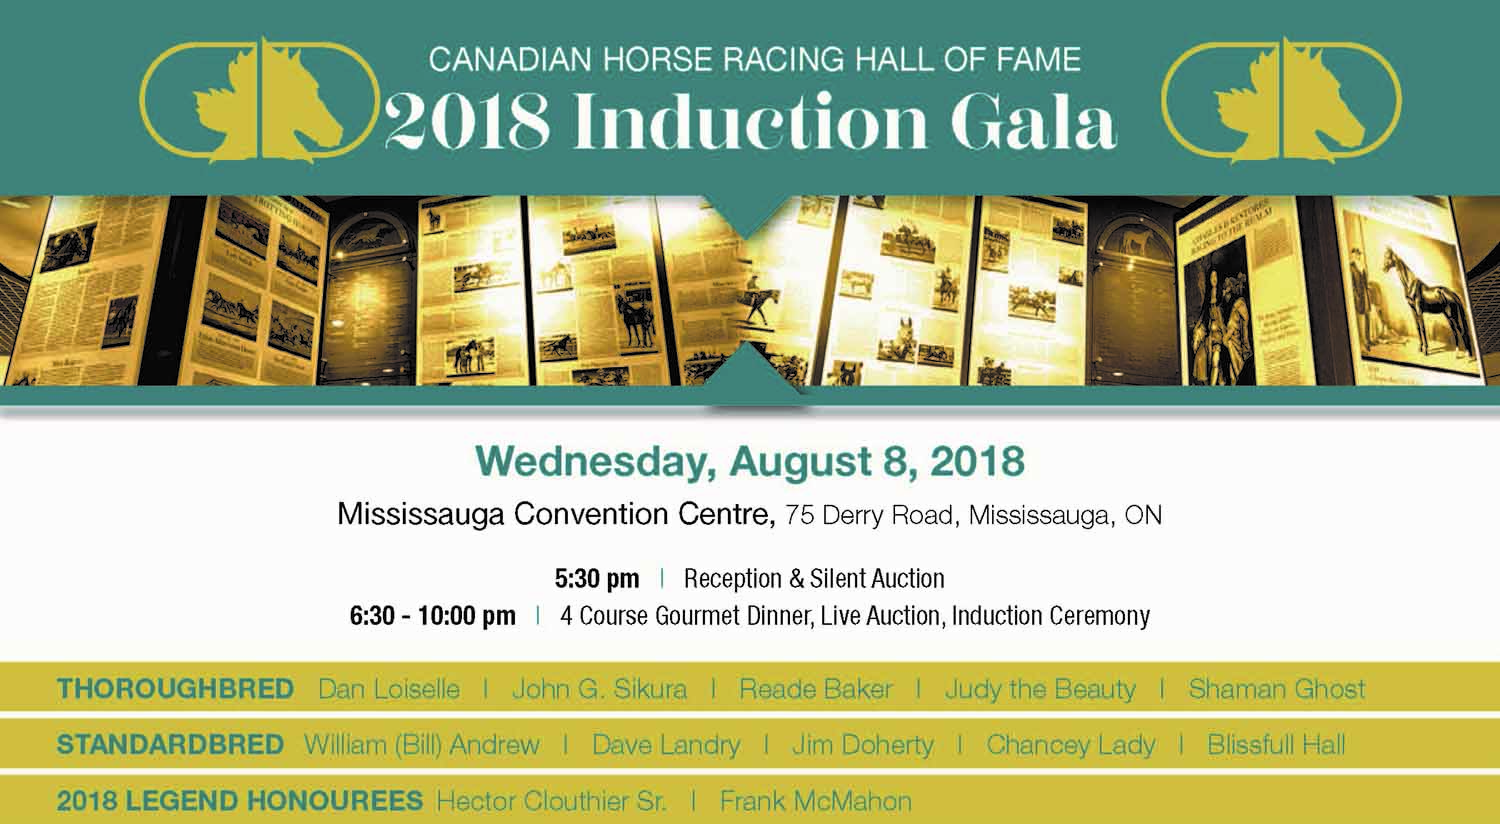 Last Call for 2018 Induction Gala Tickets- Order by August 3